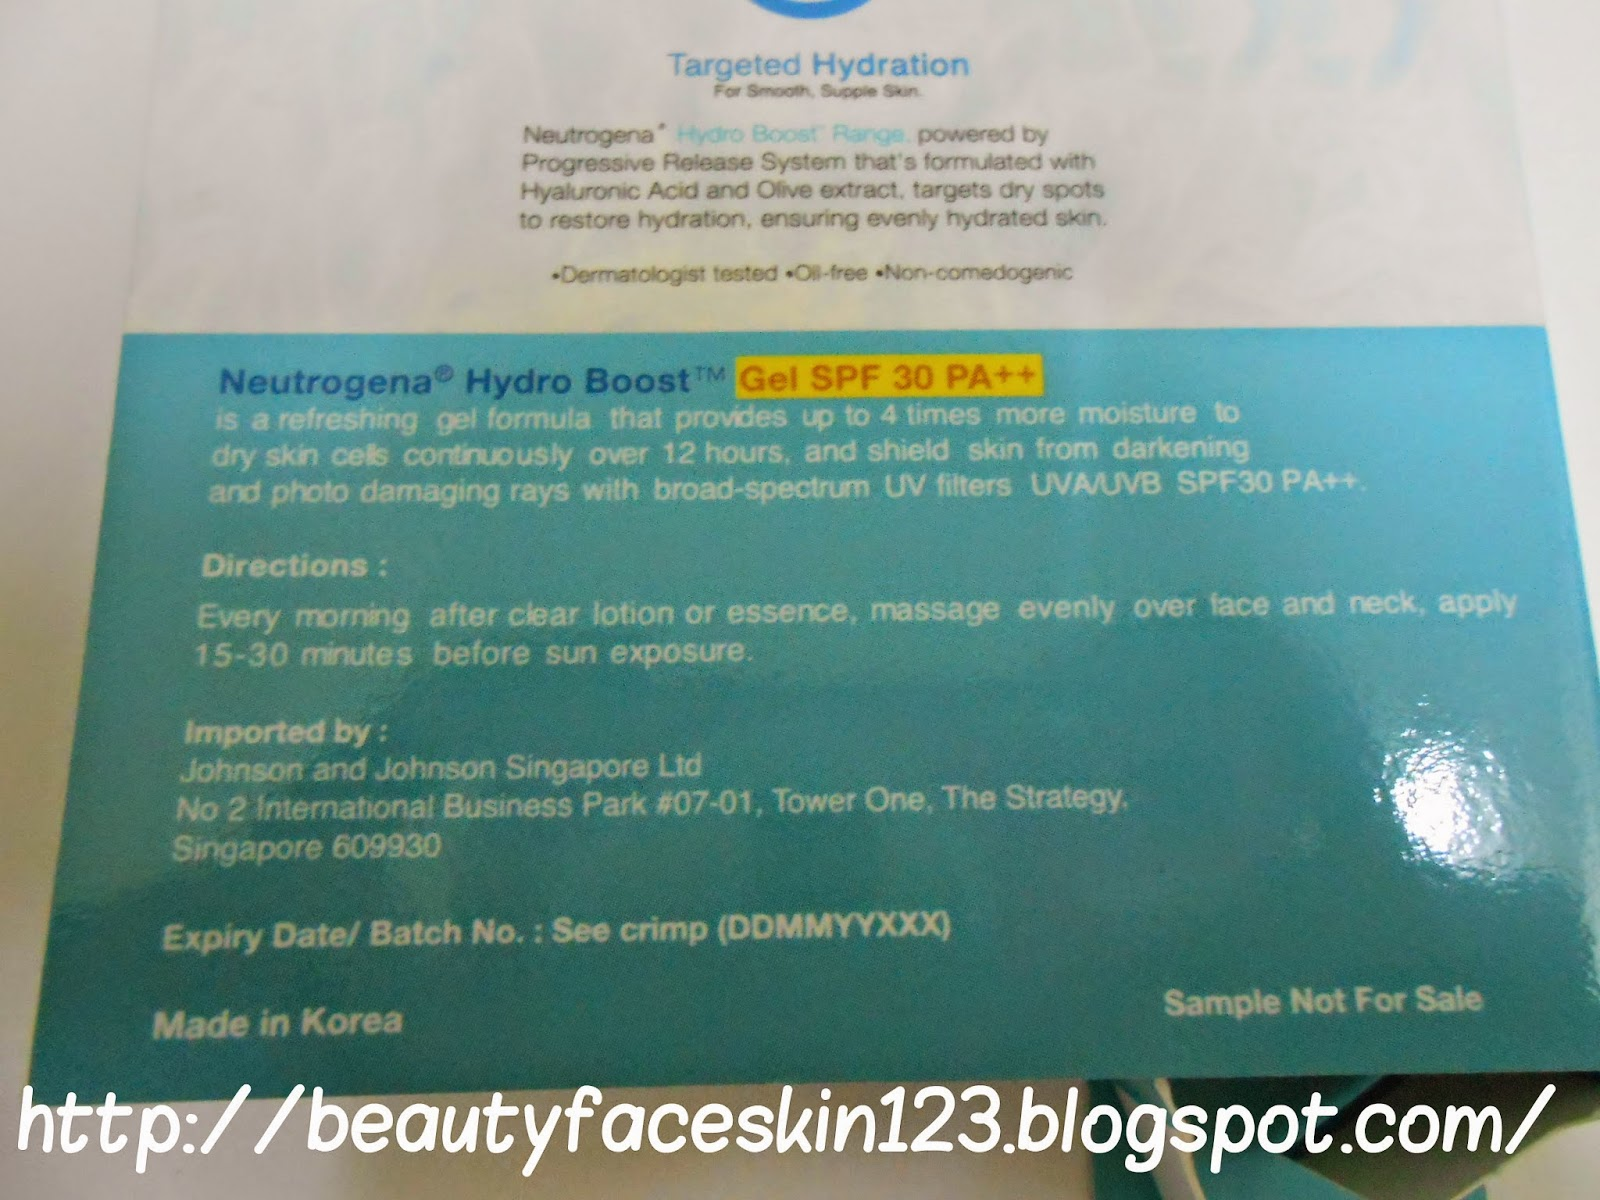 NEUTROGENA HYDRO BOOST GEL SPF30 PA++